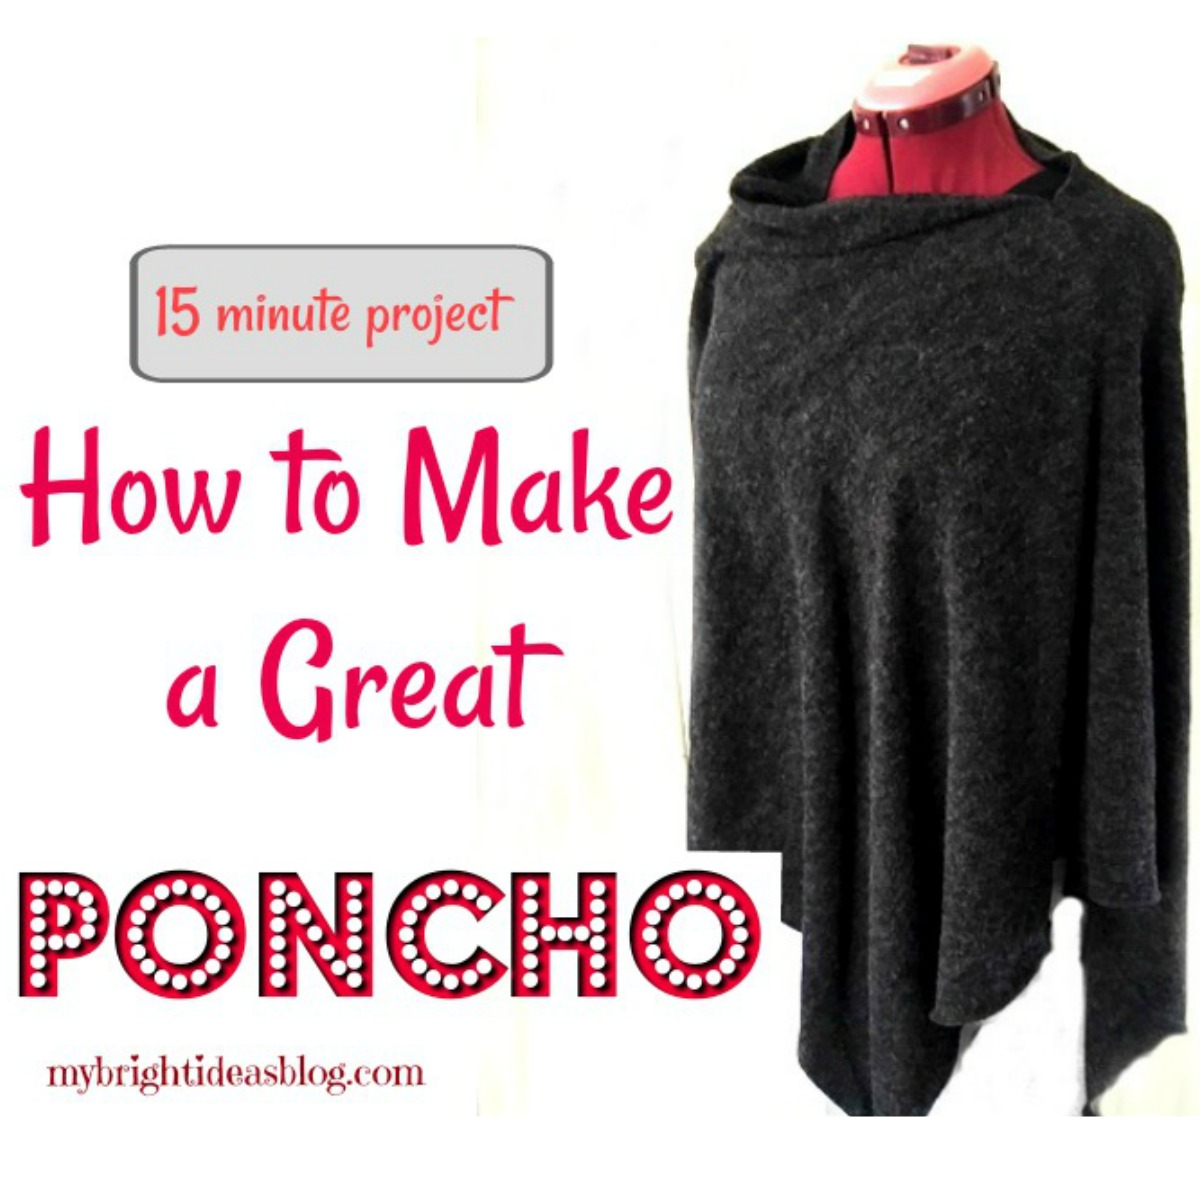 How to make a great fleece poncho with only one seam to sew. This looks amazing and is such an easy sewing project! mybrightideasblog.com